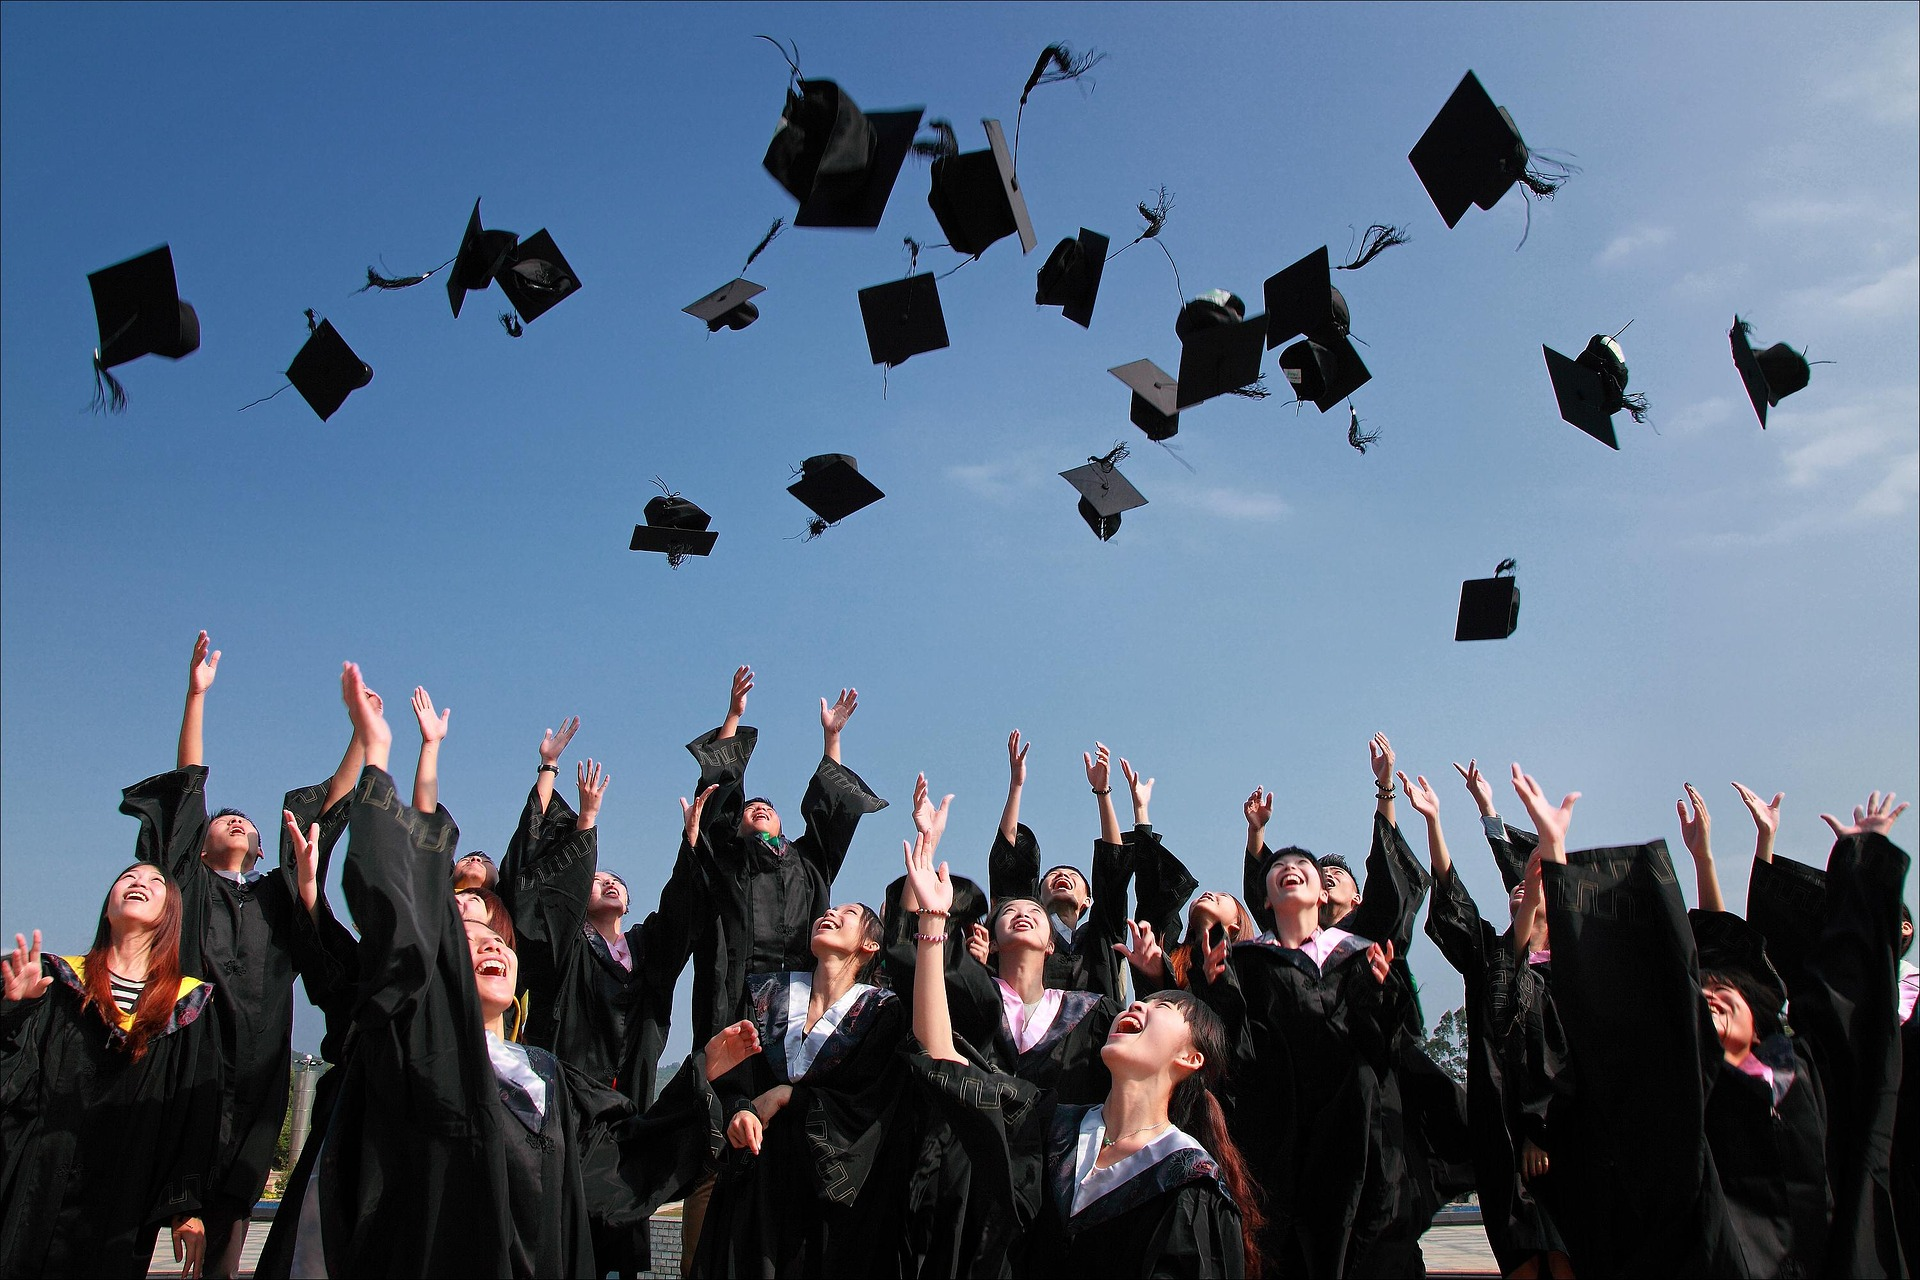 Graduating from the School of Life